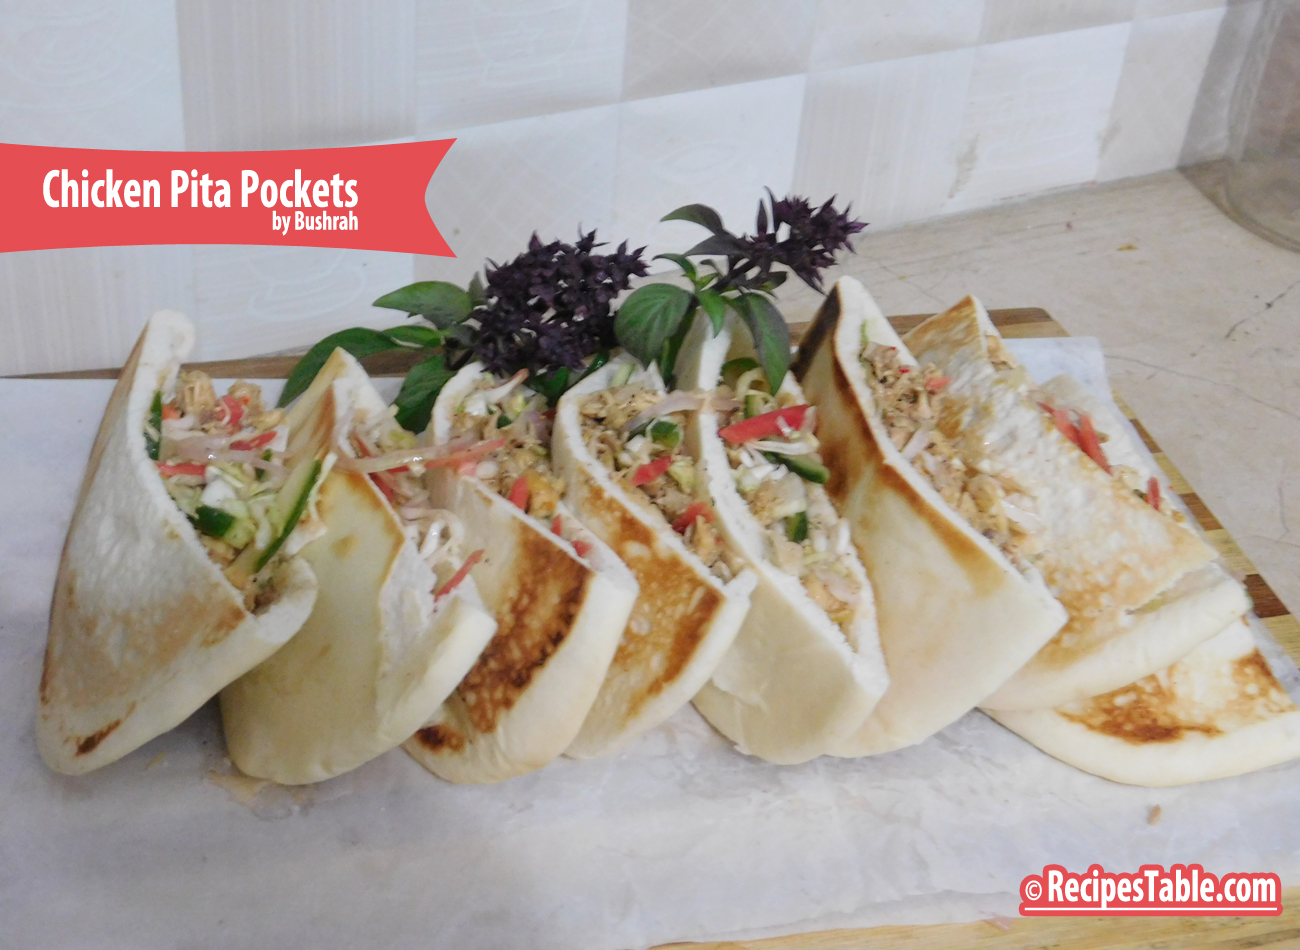 Photo: Chicken Pita Pockets